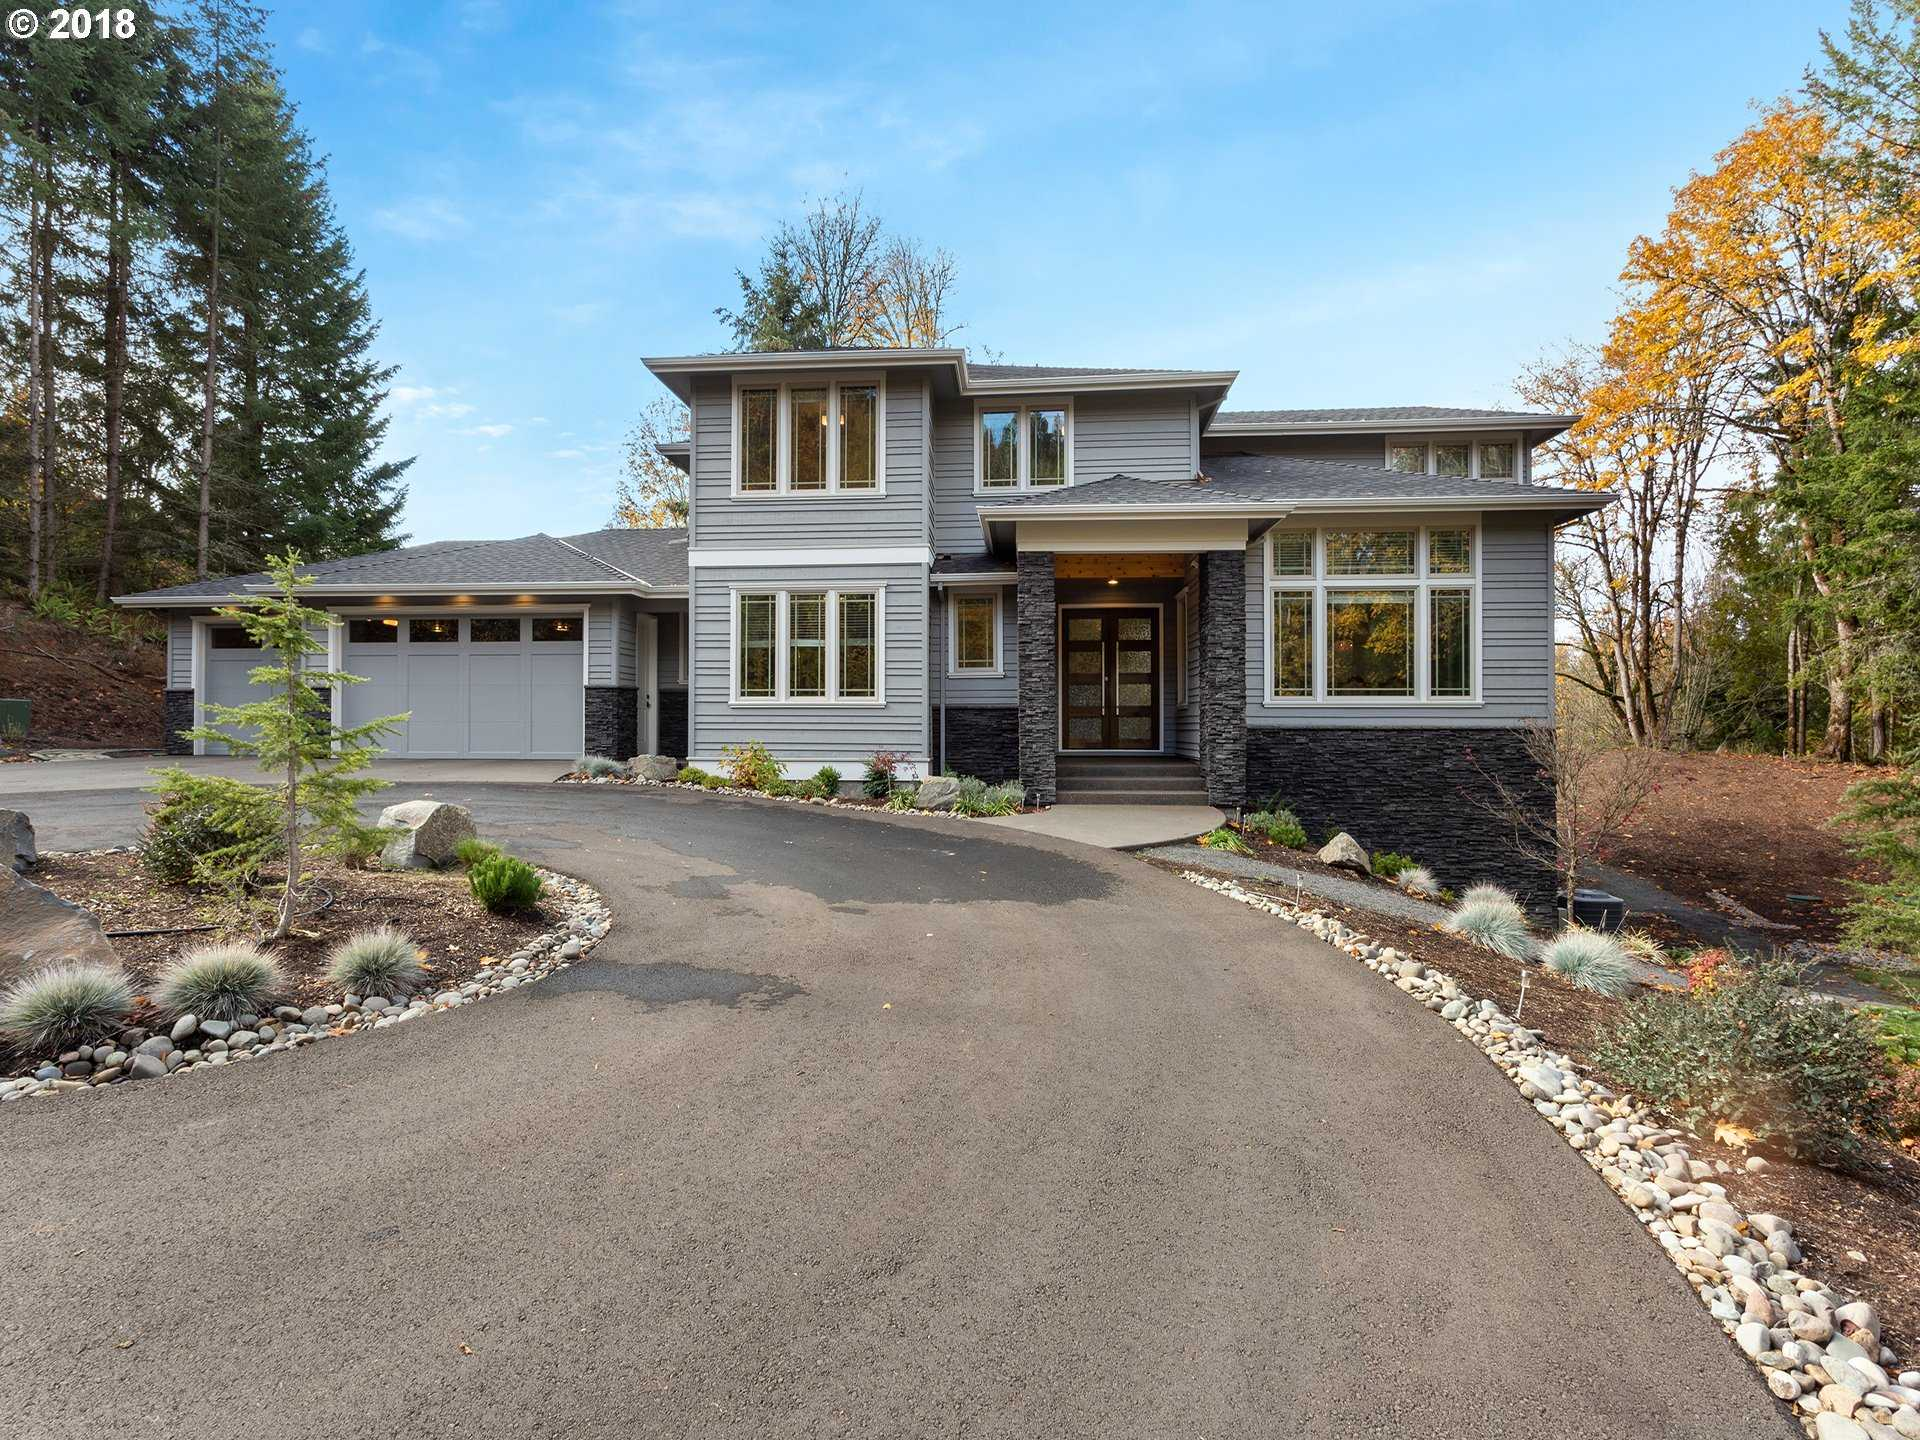 $1,395,000 - 5Br/5Ba -  for Sale in Parrett Mountain View Estates, Sherwood